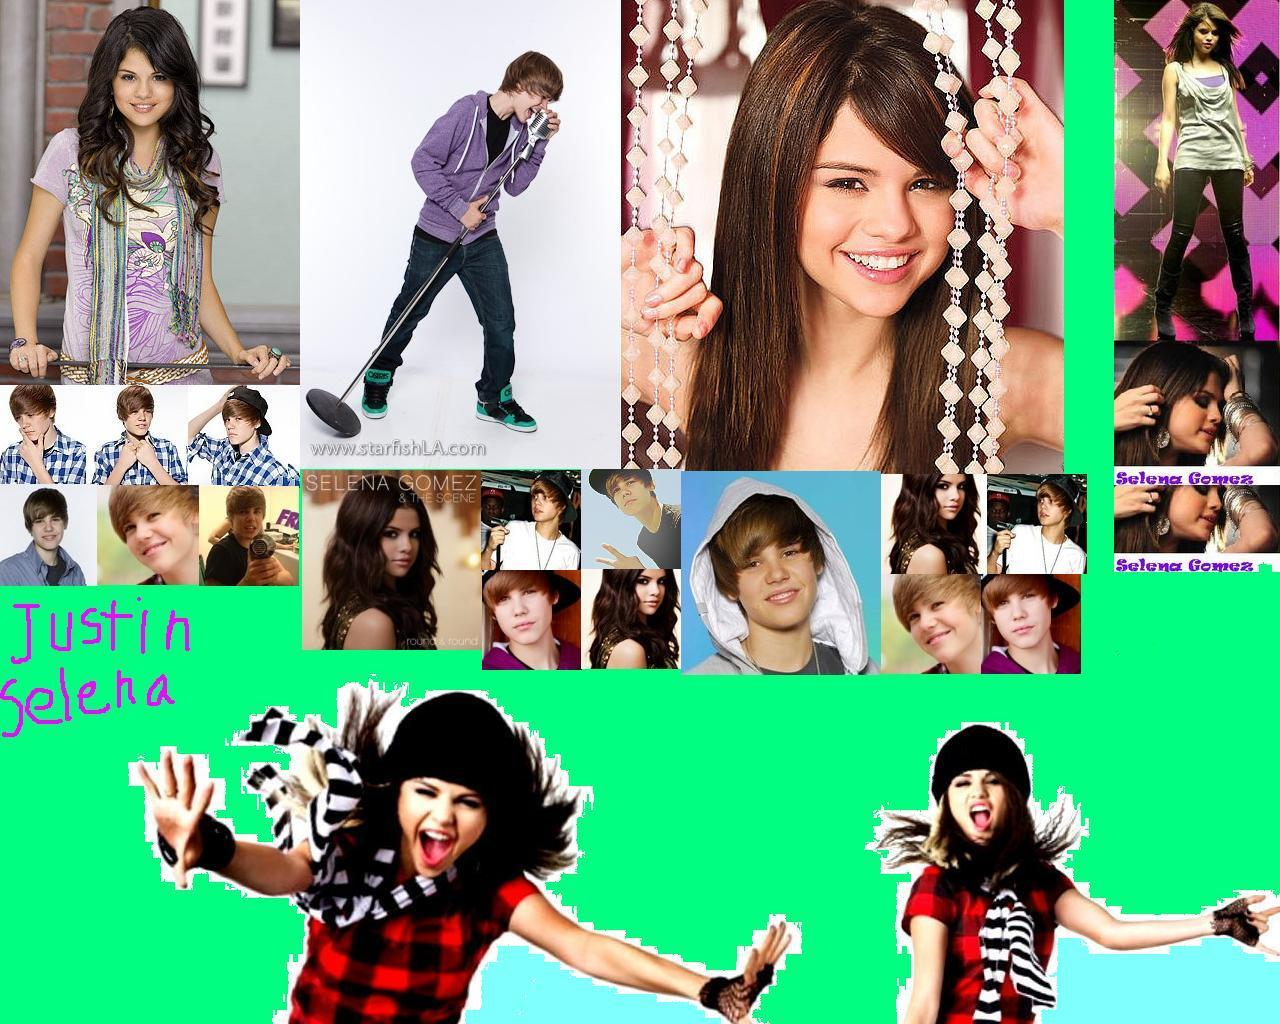 Justin Bieber and Selena sexy wallpapers